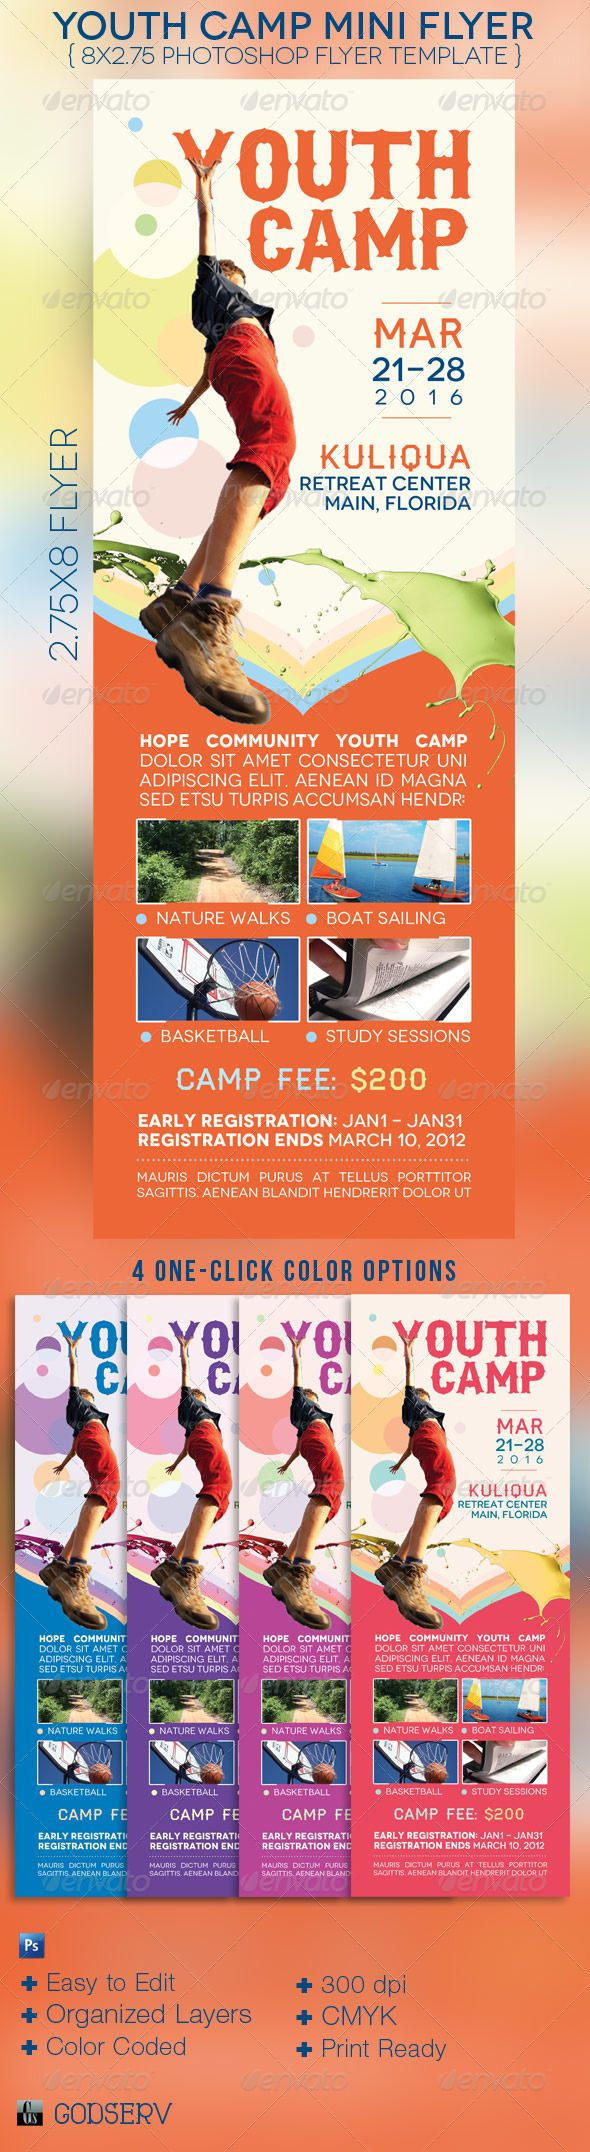 best images about camp behance fonts and flyer youth camp mini flyer template